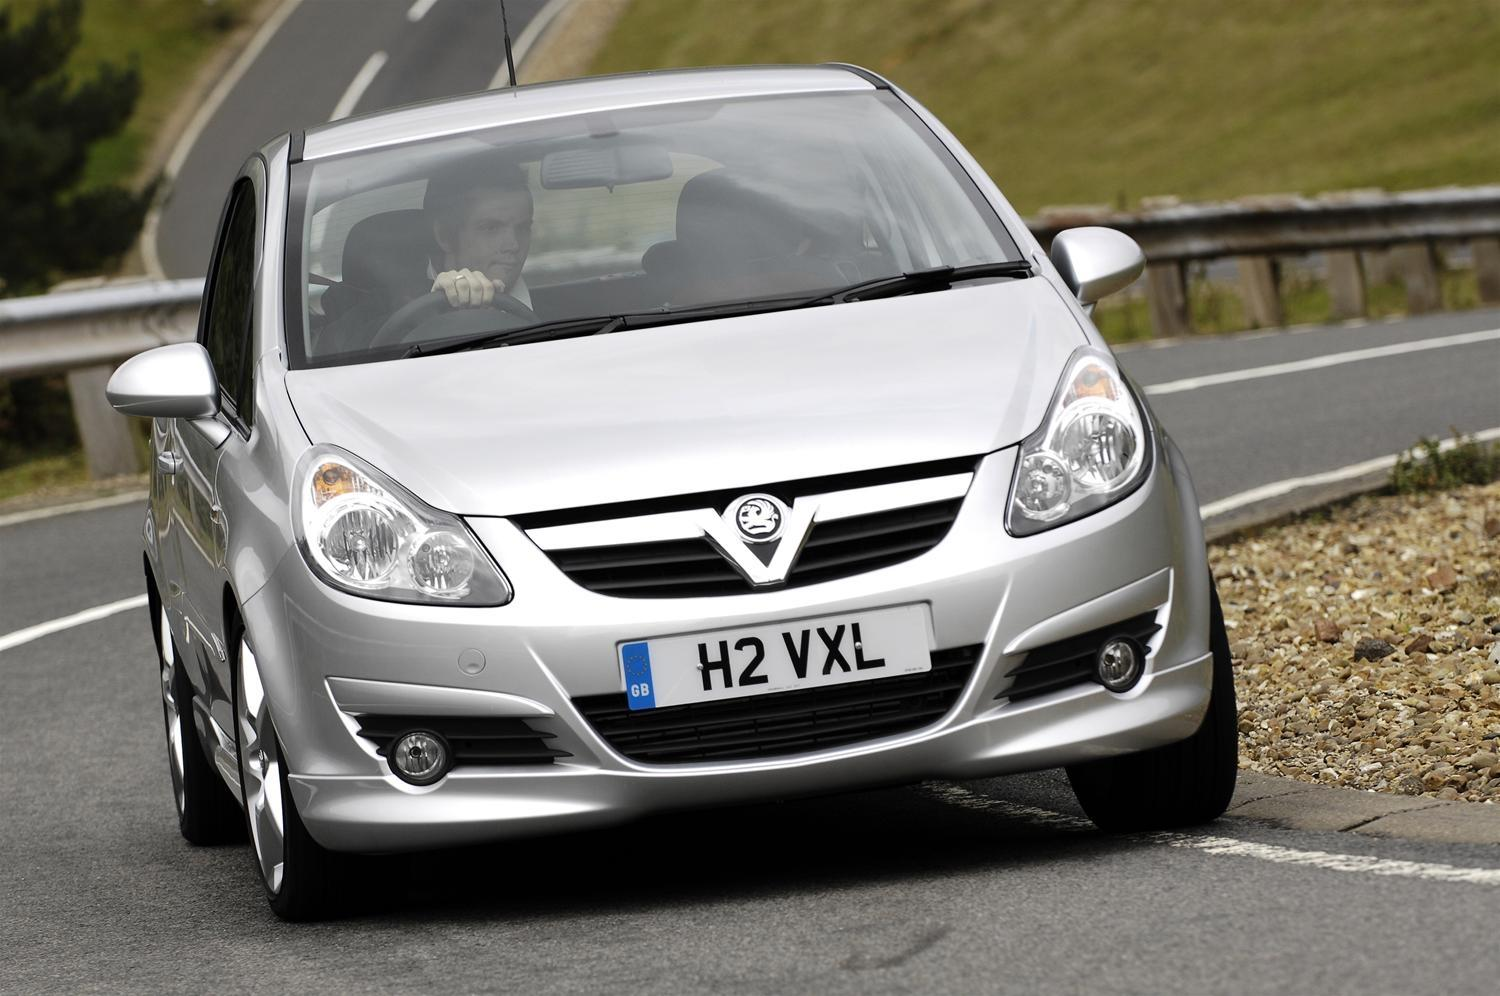 Best used cars for under £7,000